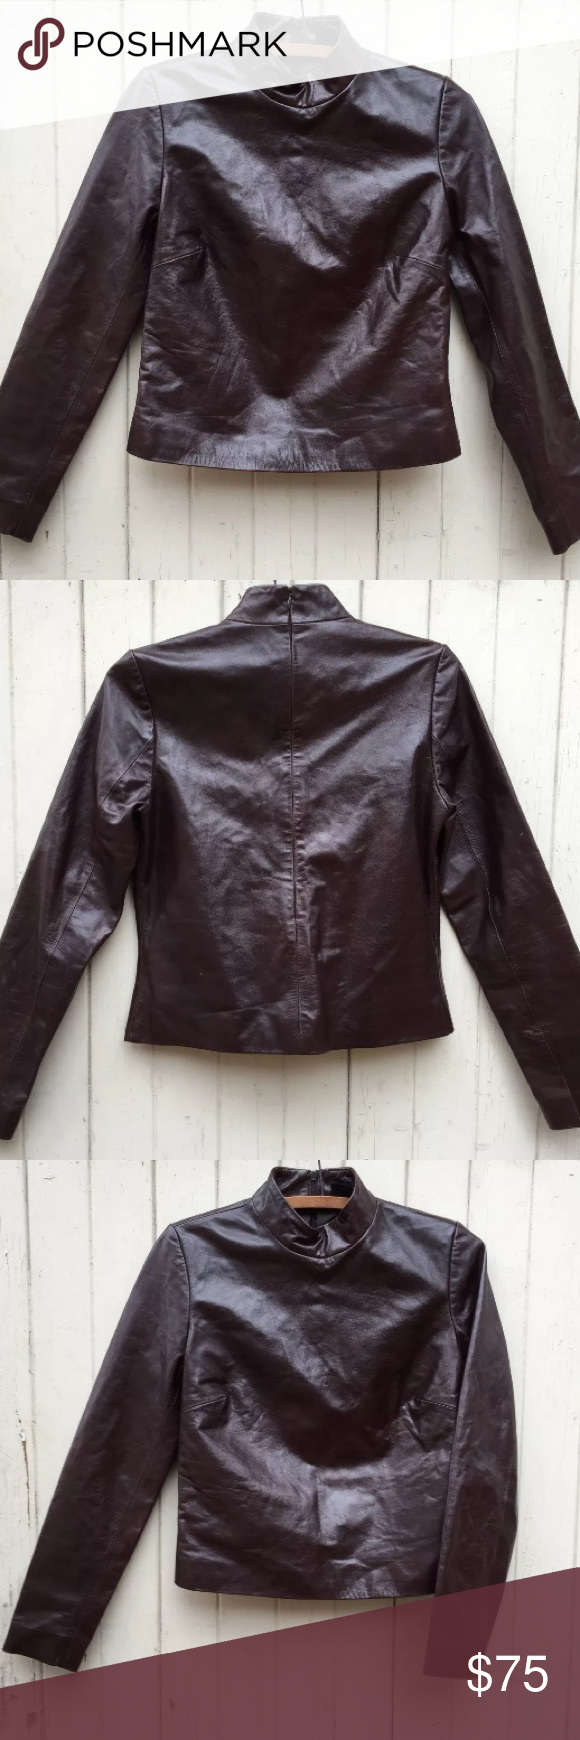 """Brown leather turtleneck, vintage Gap, size 4 Rich, dark espresso brown genuine leather turtleneck top by Gap.  With long sleeves and a slim fit.  Lined in brown satin, and with zip closure at the center back.  Marked size 4.  In good vintage condition, with some light distressing (of the appealing variety that enhances vintage leather).   Shoulder-14.25"""" Sleeve-23""""  Bust-approx. 34"""" Waist-approx. 32"""" at natural waist/34"""" at bottom  Length-just under 20"""" as measured from base of collar to…"""